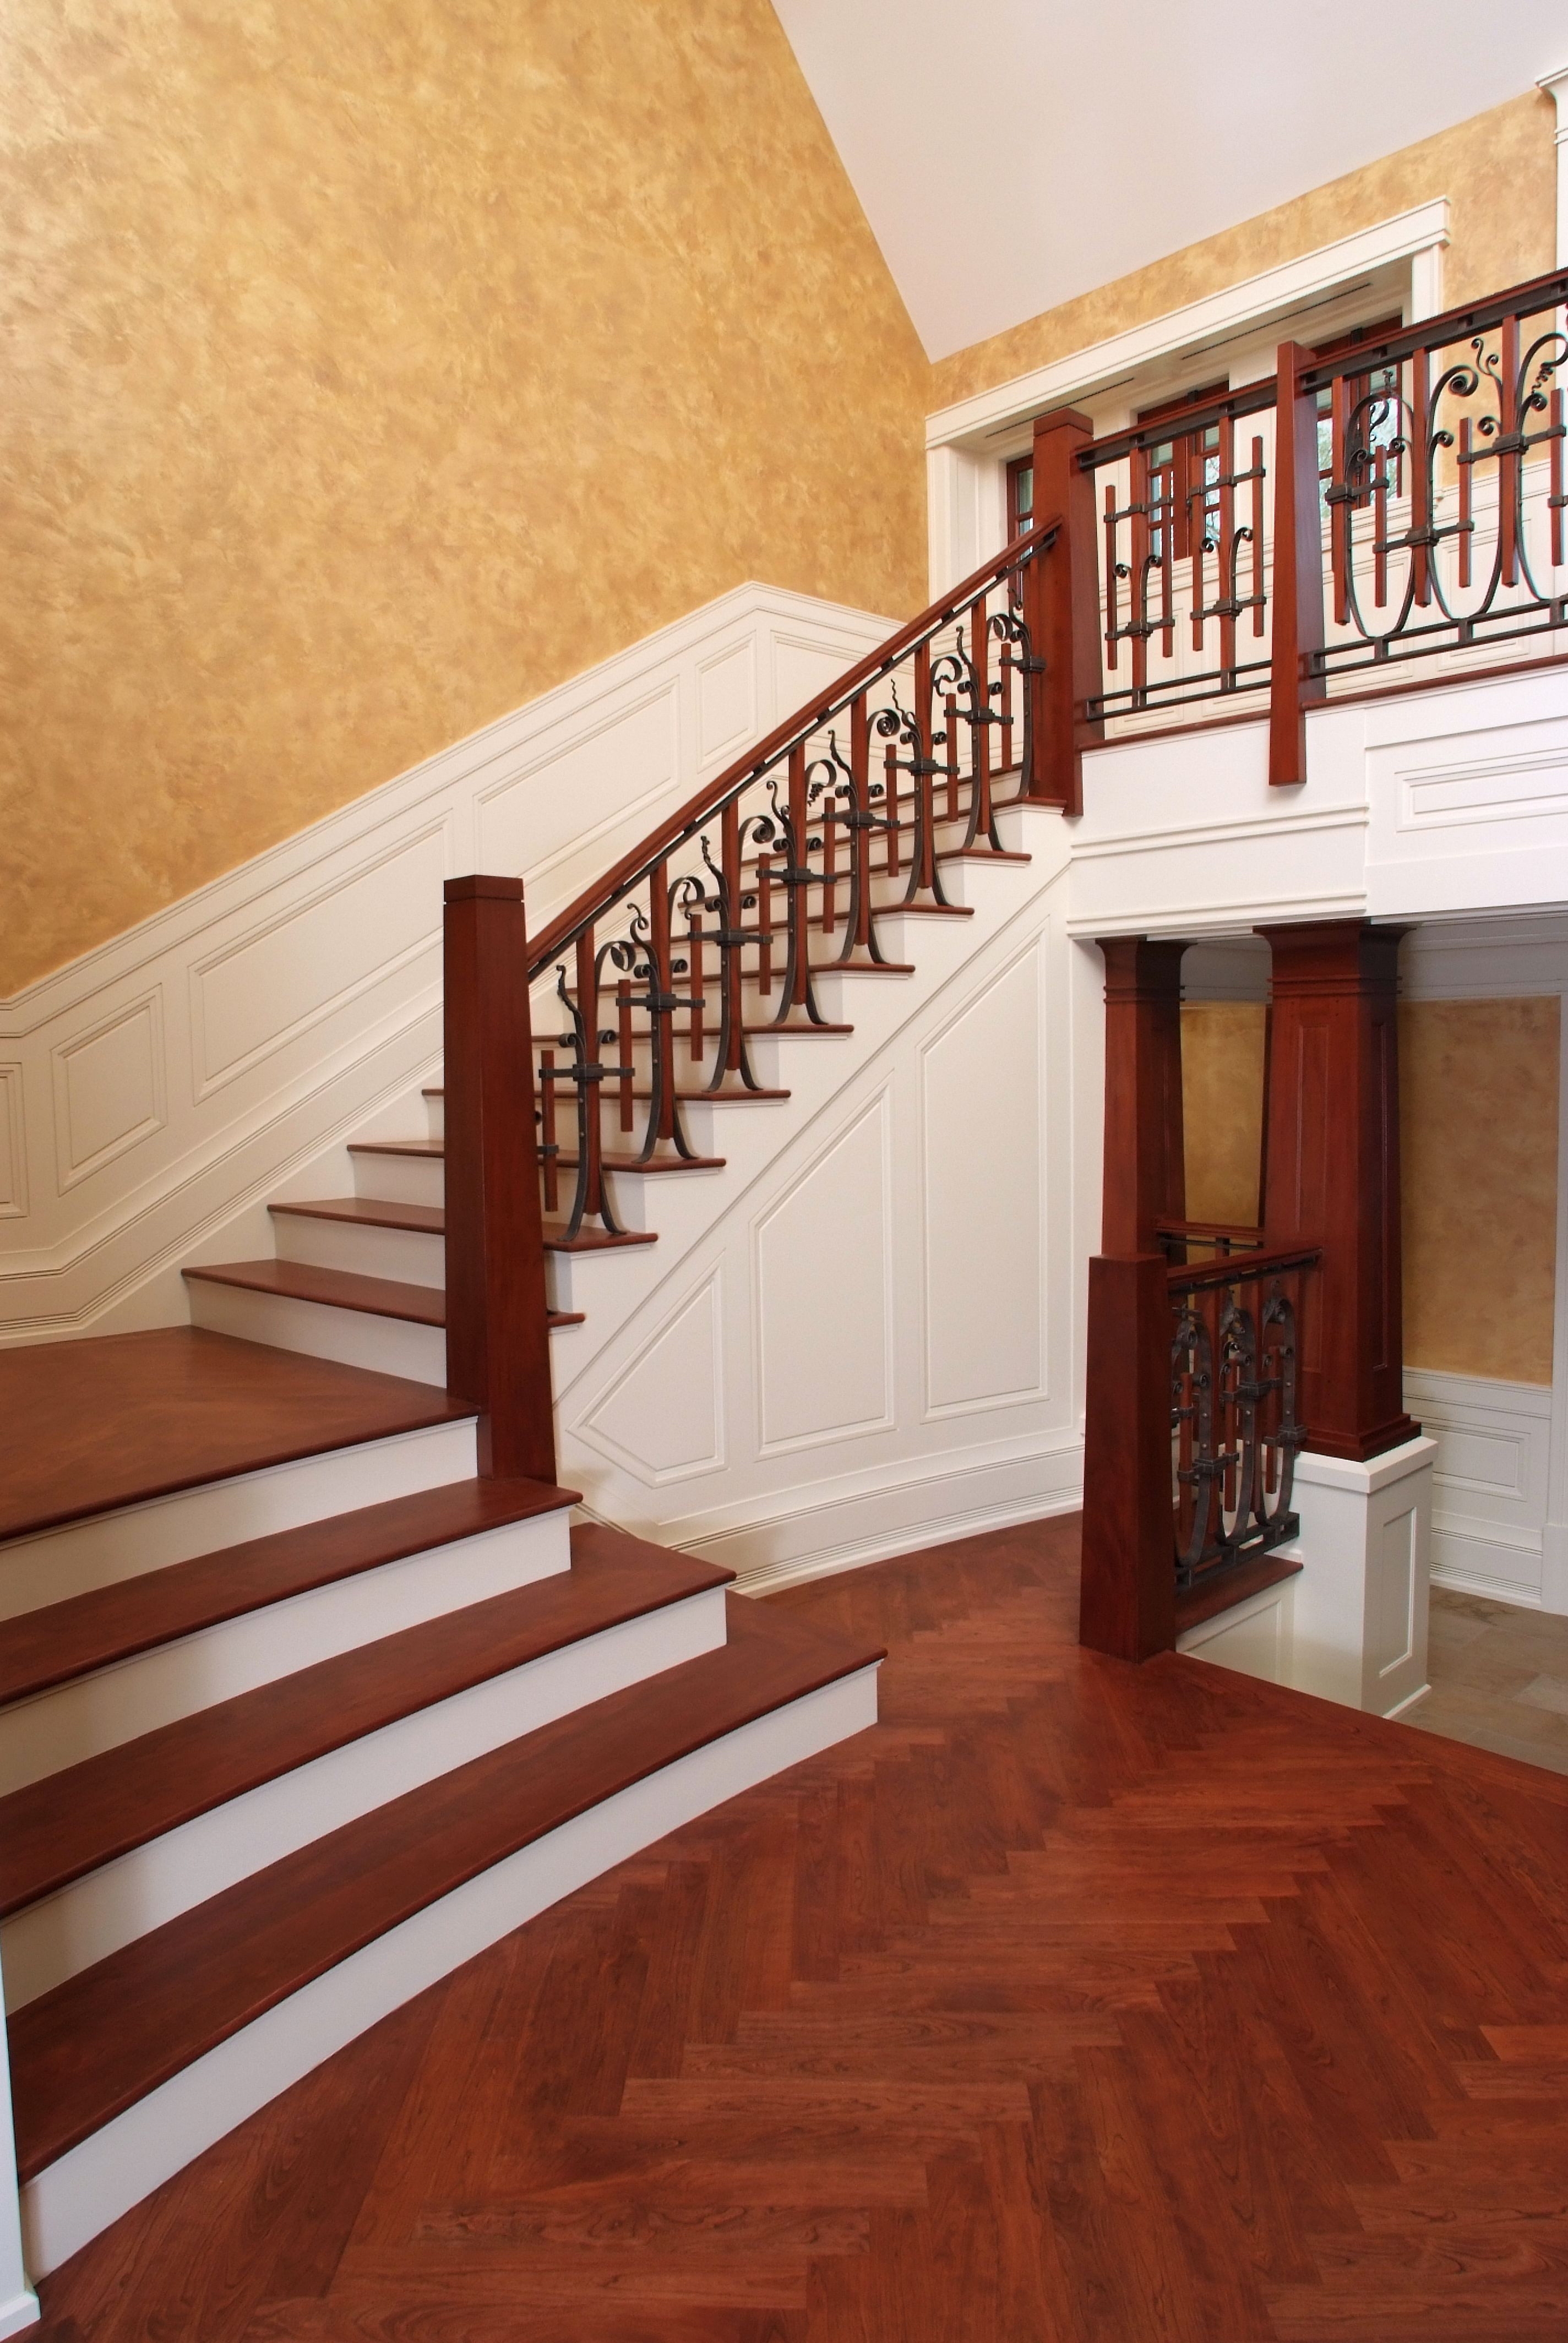 hardwood flooring on stairs pictures of custom mahogany staircase with cherry stair treads and solid cherry regarding custom mahogany staircase with cherry stair treads and solid cherry herringbone pattern floor